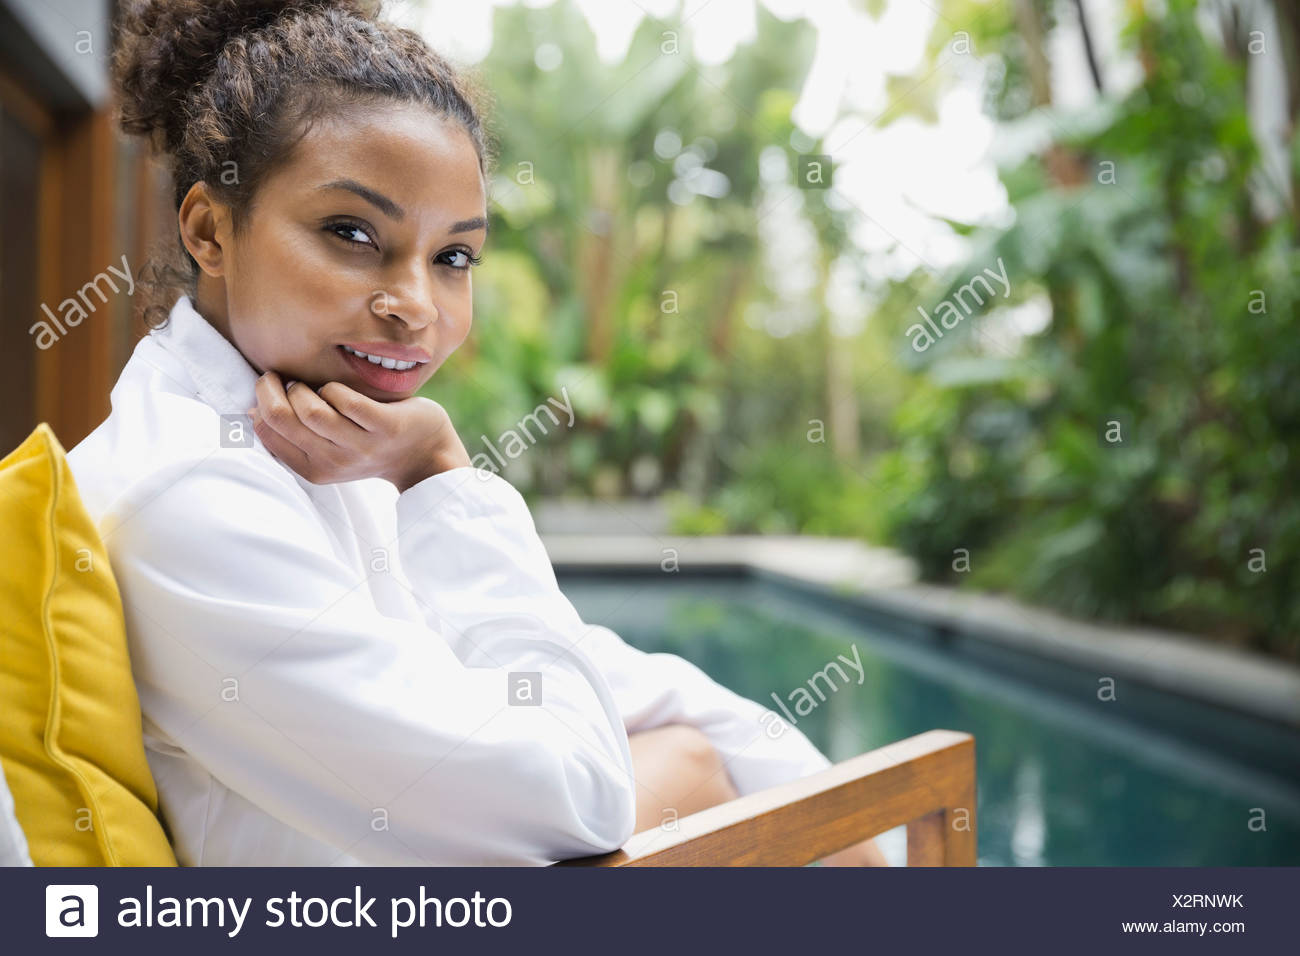 Portrait of woman at day spa - Stock Image